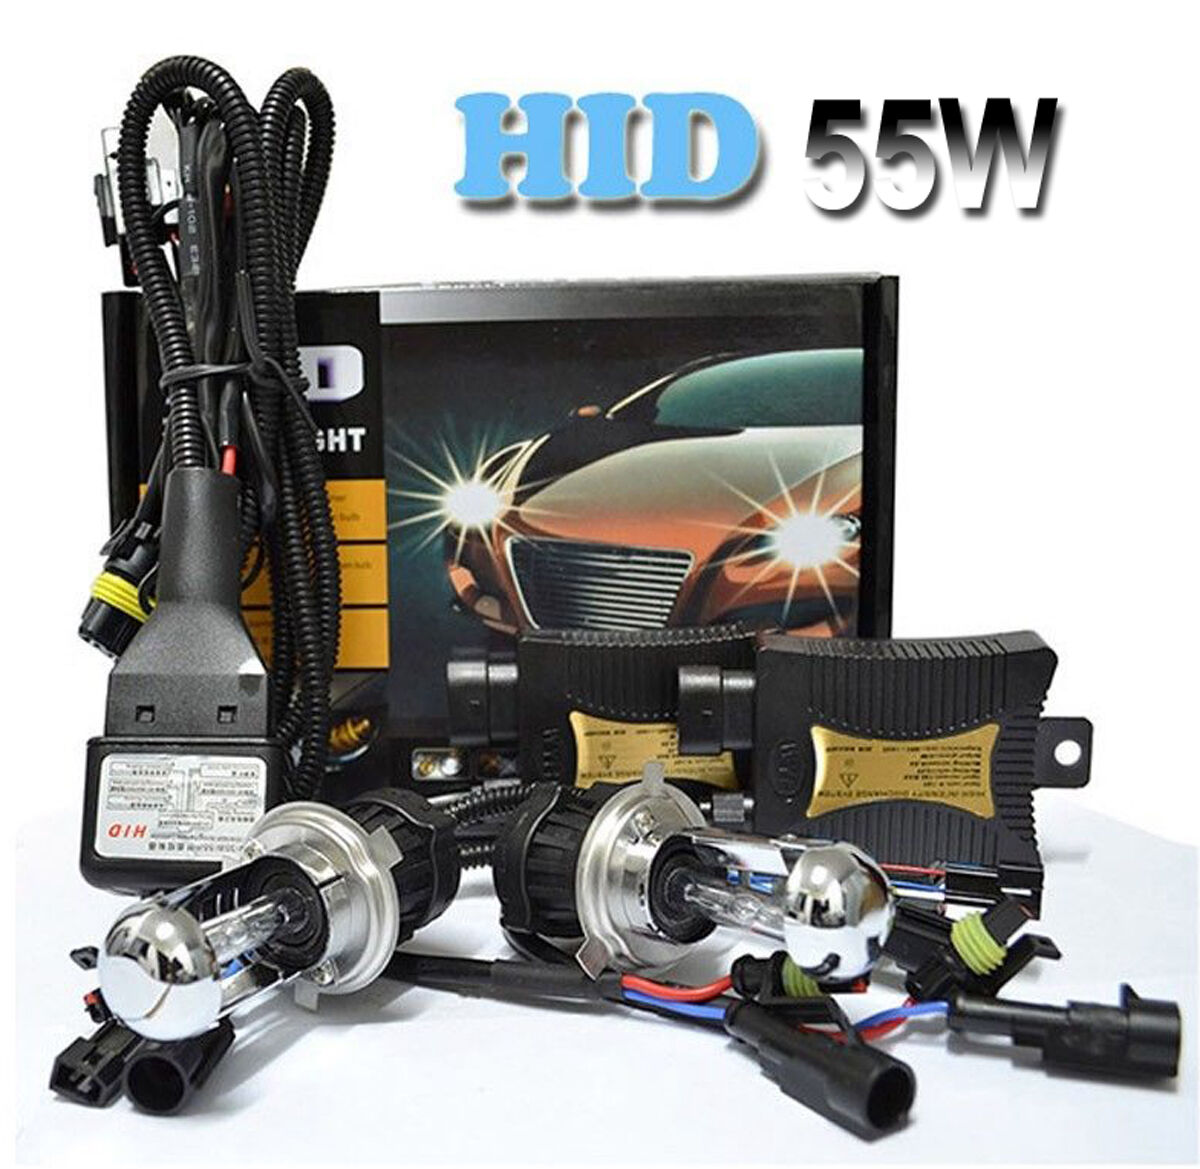 55w hid xenon headlight conversion kit h1 h3 h4 h7 h11. Black Bedroom Furniture Sets. Home Design Ideas